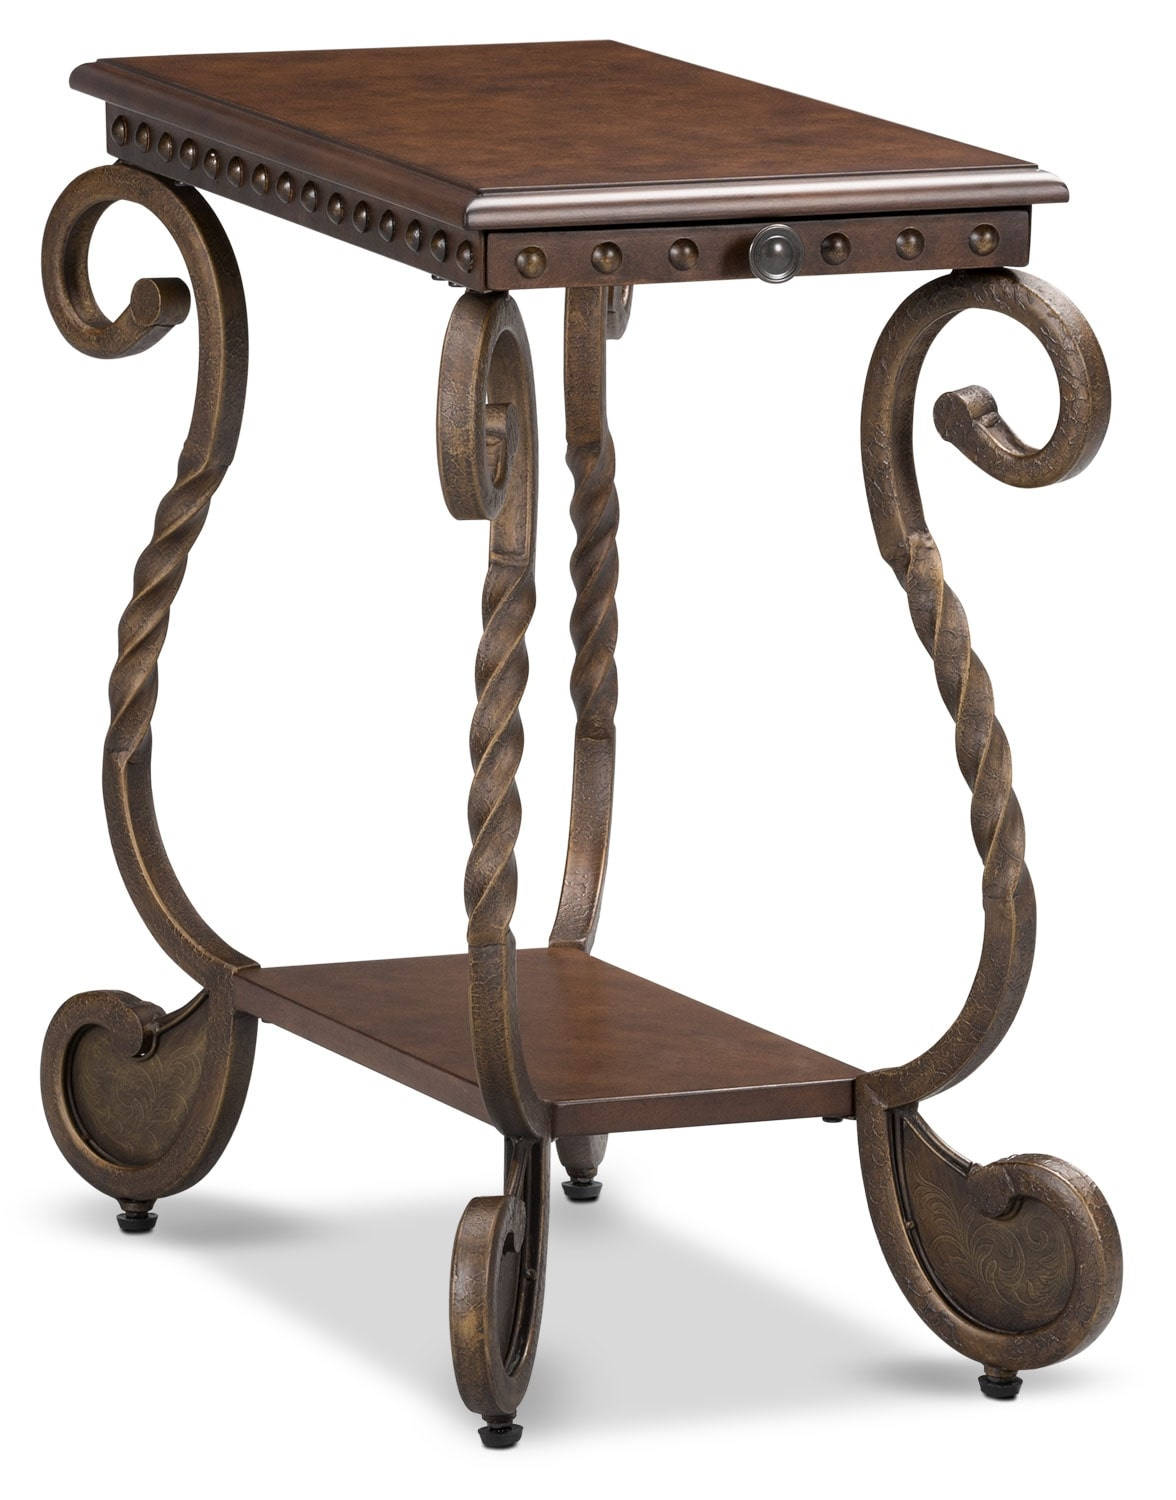 chair side tables canada high seat dining chairs elderly cordoba coffee table  dark brown the brick